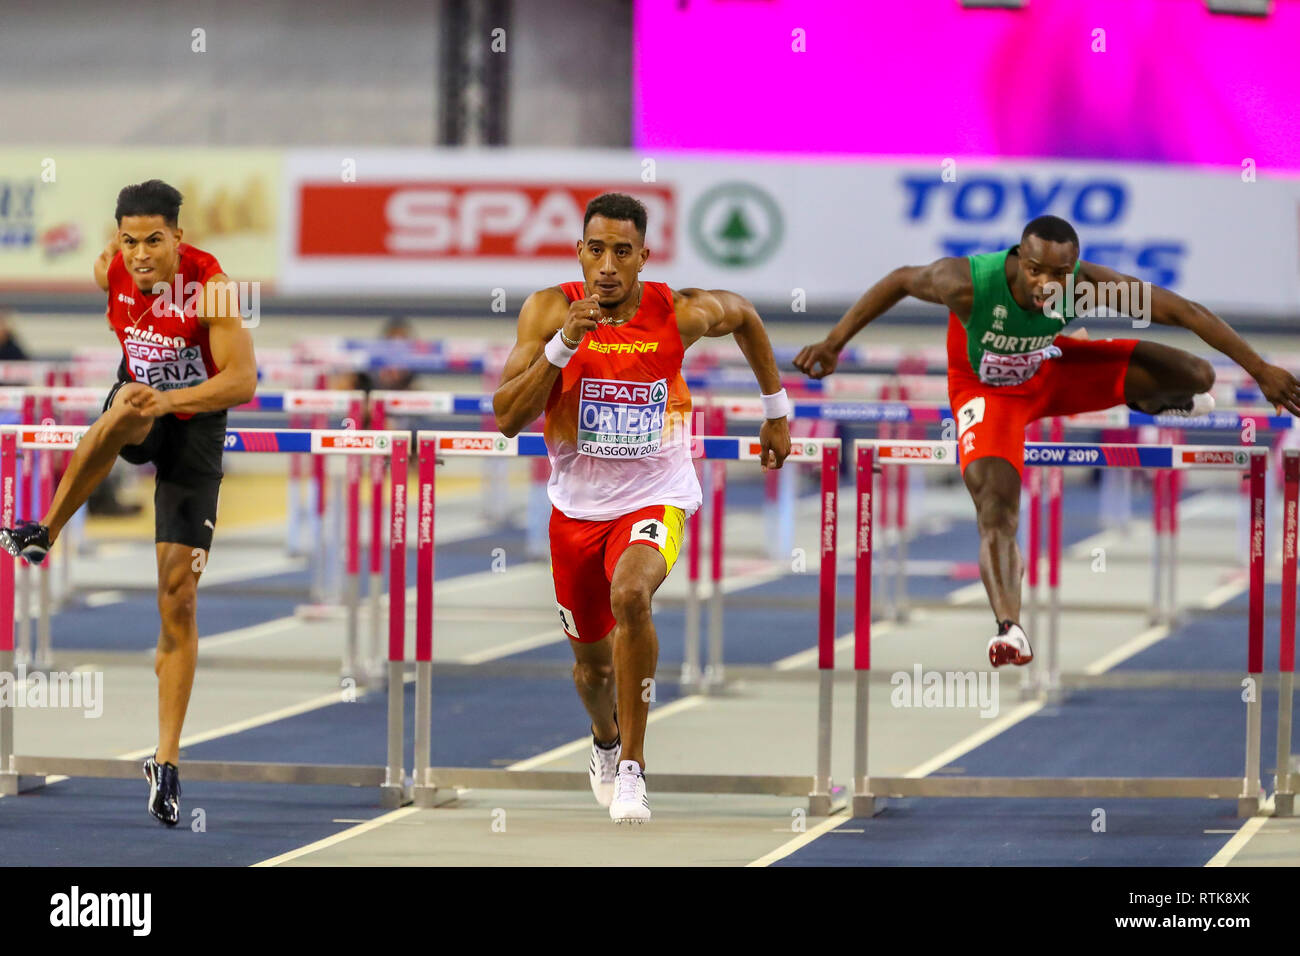 Glasgow, Scotland, UK. 2nd March, 2019. Orlando Ortega, representing Spain finishing at the men's 60 metre hurdles race at the European Athletics indoor championships, Glasgow, UK. He is pursued by Brahian Pena of Switzerland and Rasul Dabo of Portugal Credit: Findlay/Alamy Live News - Stock Image